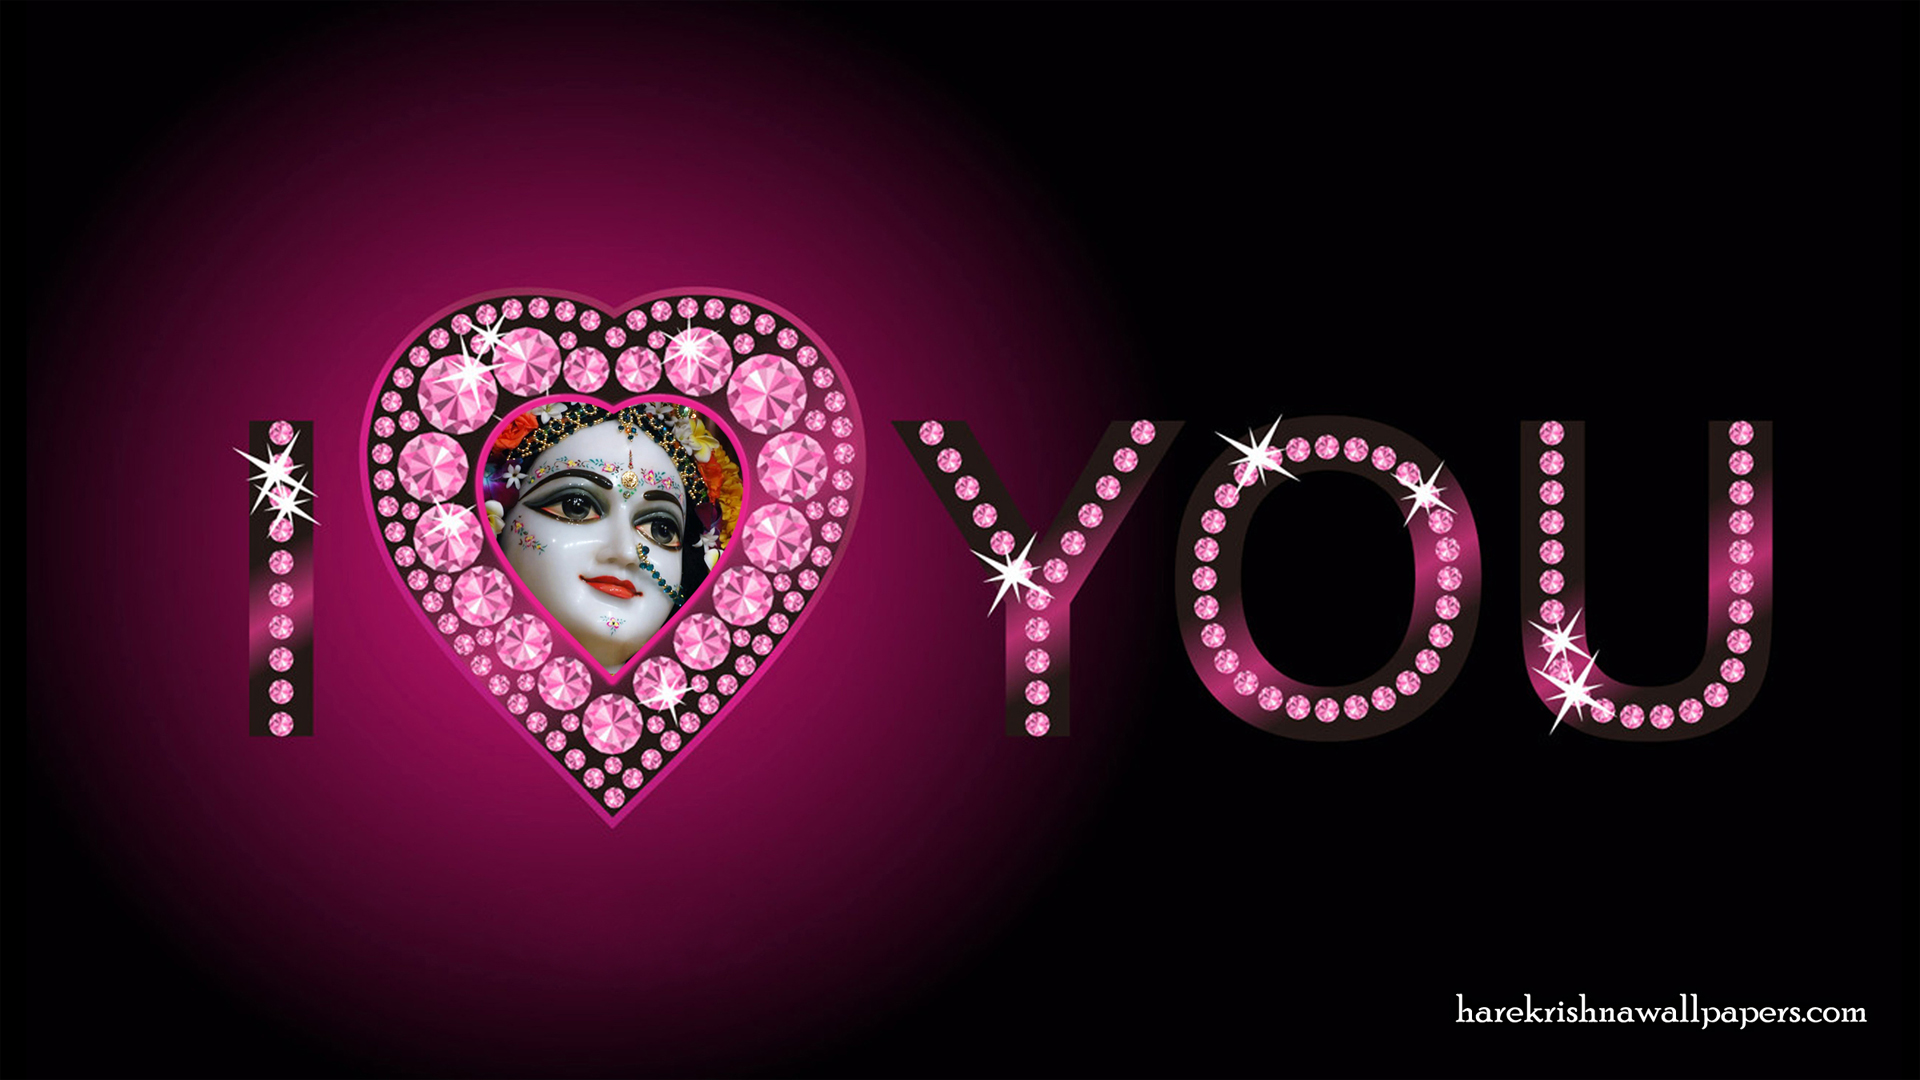 I Love You Radharani Wallpaper (013) Size 1920x1080 Download